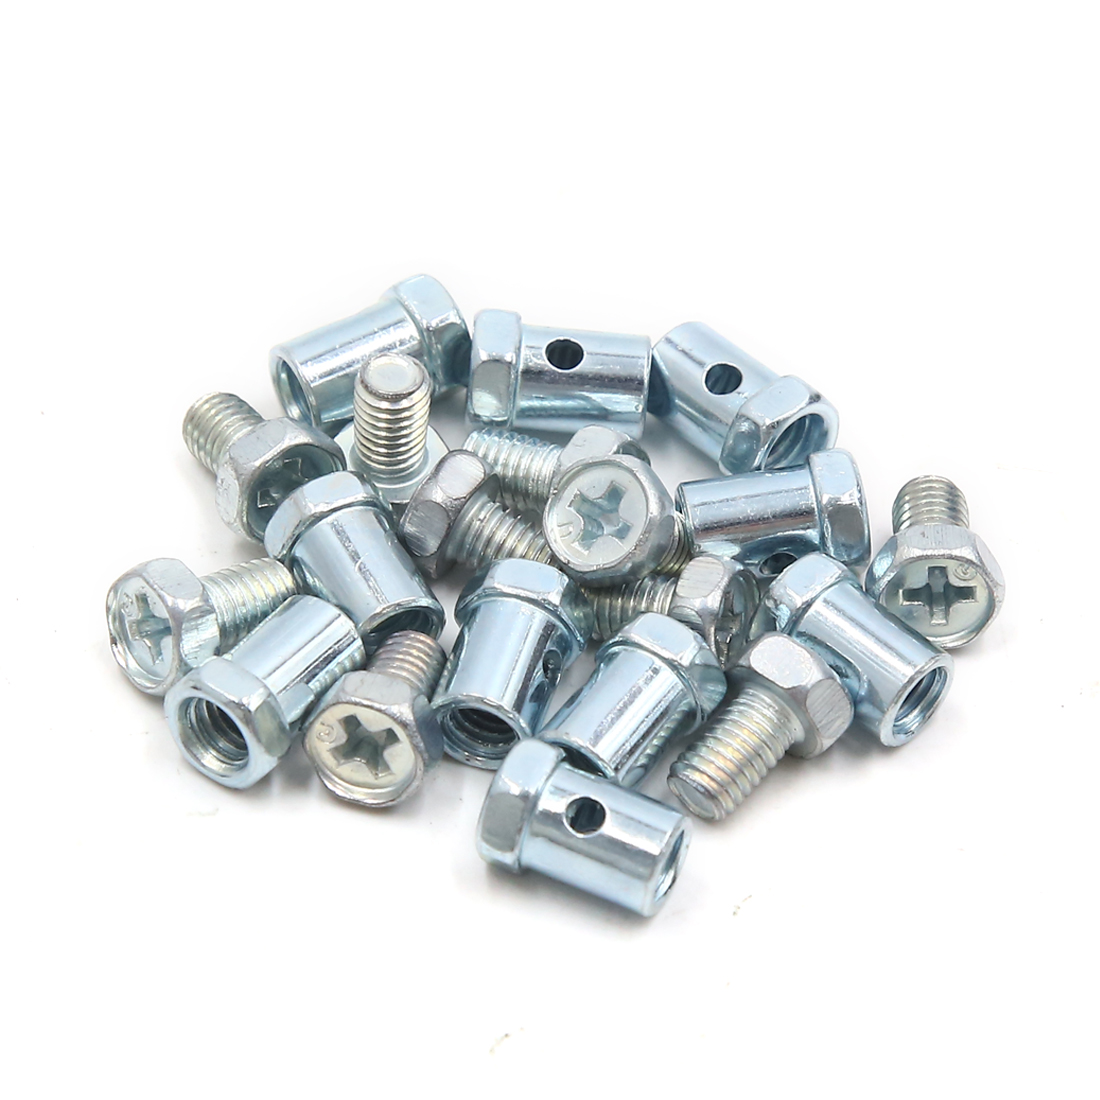 10Pcs 14 x 8mm Phillips Head Screw Motorcycle Brake Cable Solderless Wire Nipple